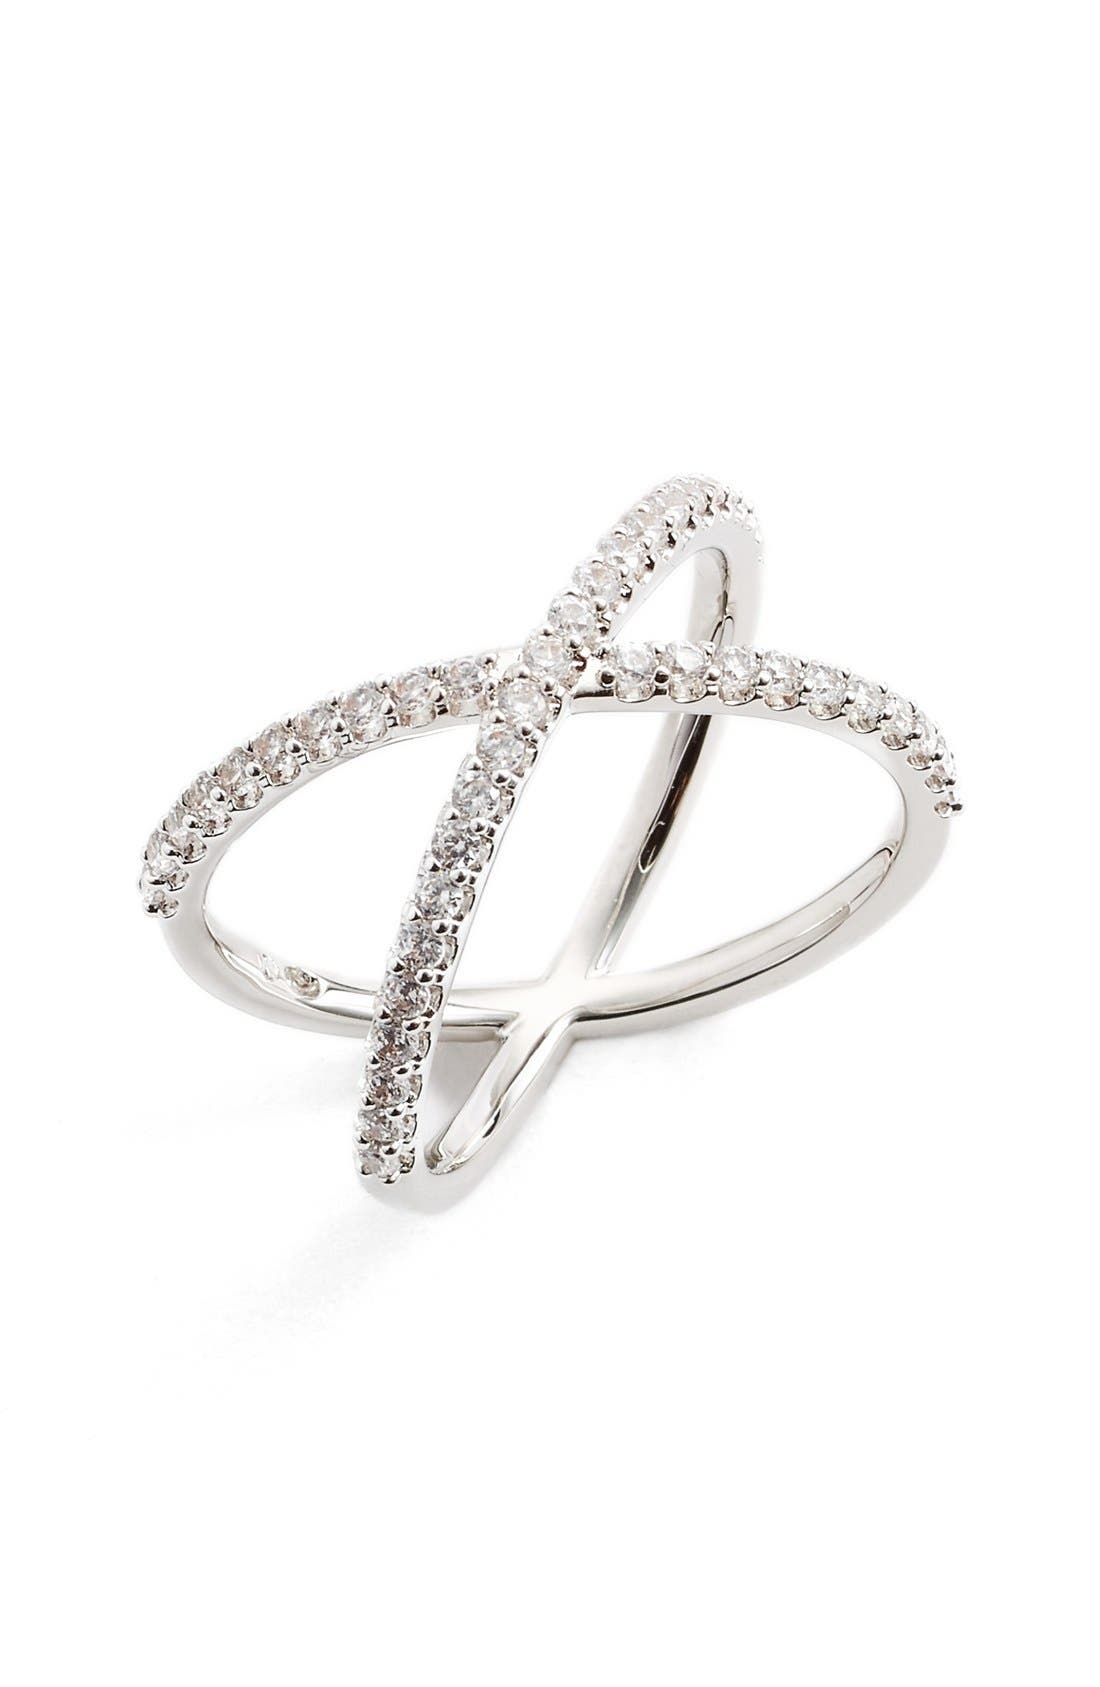 NADRI,                             Crossover Cubic Zirconia Ring,                             Main thumbnail 1, color,                             040